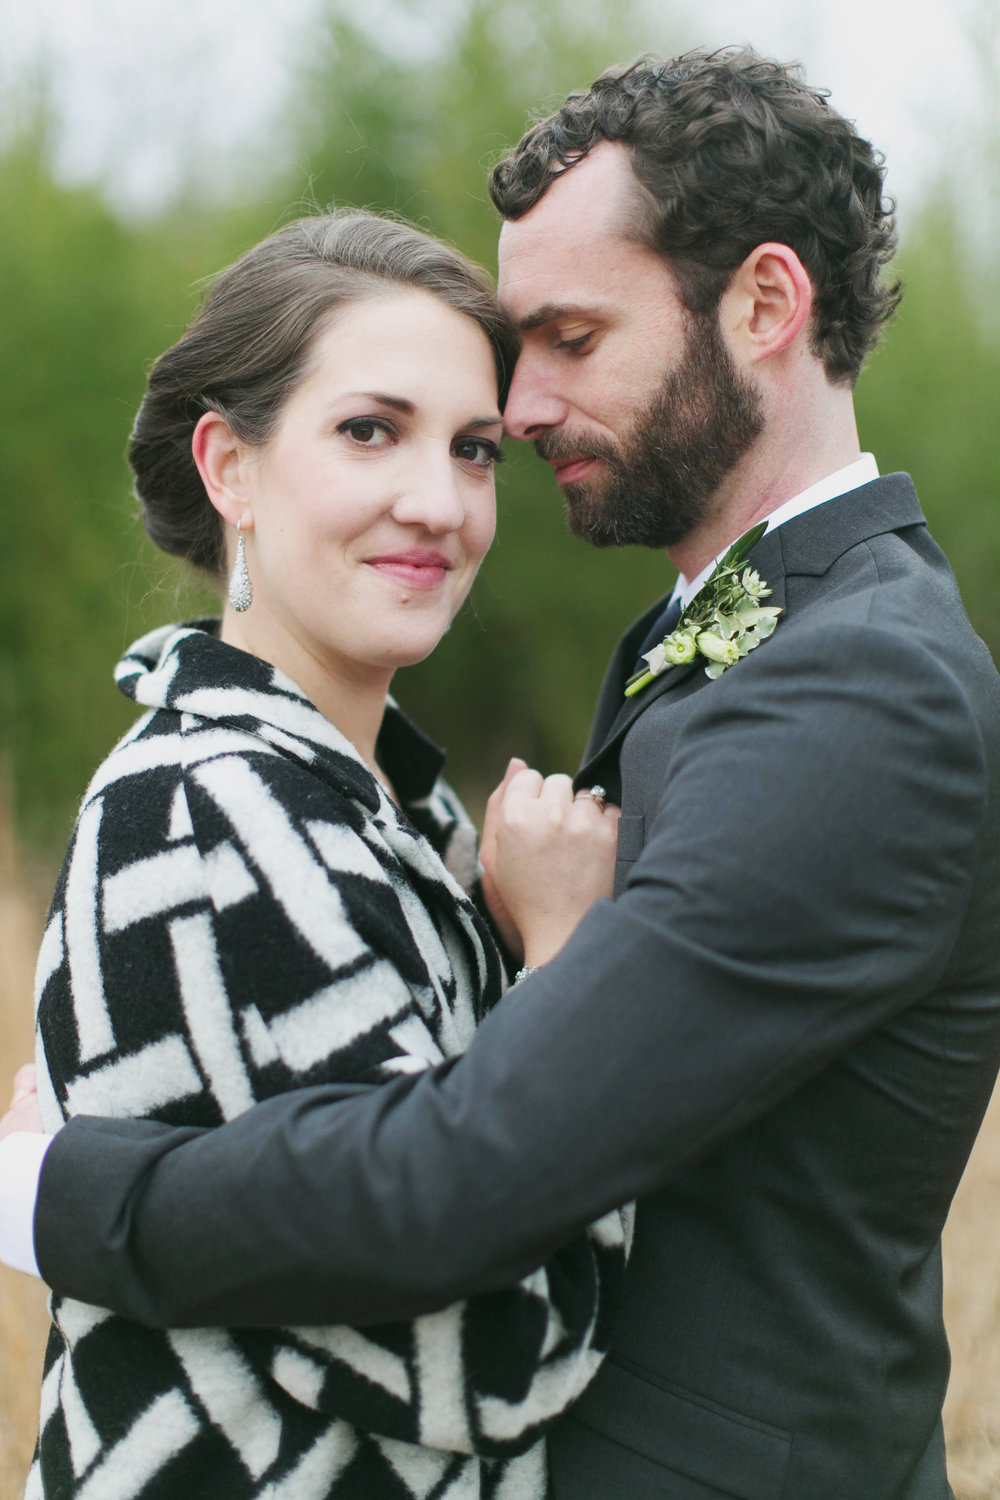 Simply-Charming-Socials_Atlanta-Wedding-Planner_Our-Labor-Of-Love_Emily-and-Jon_9.jpg